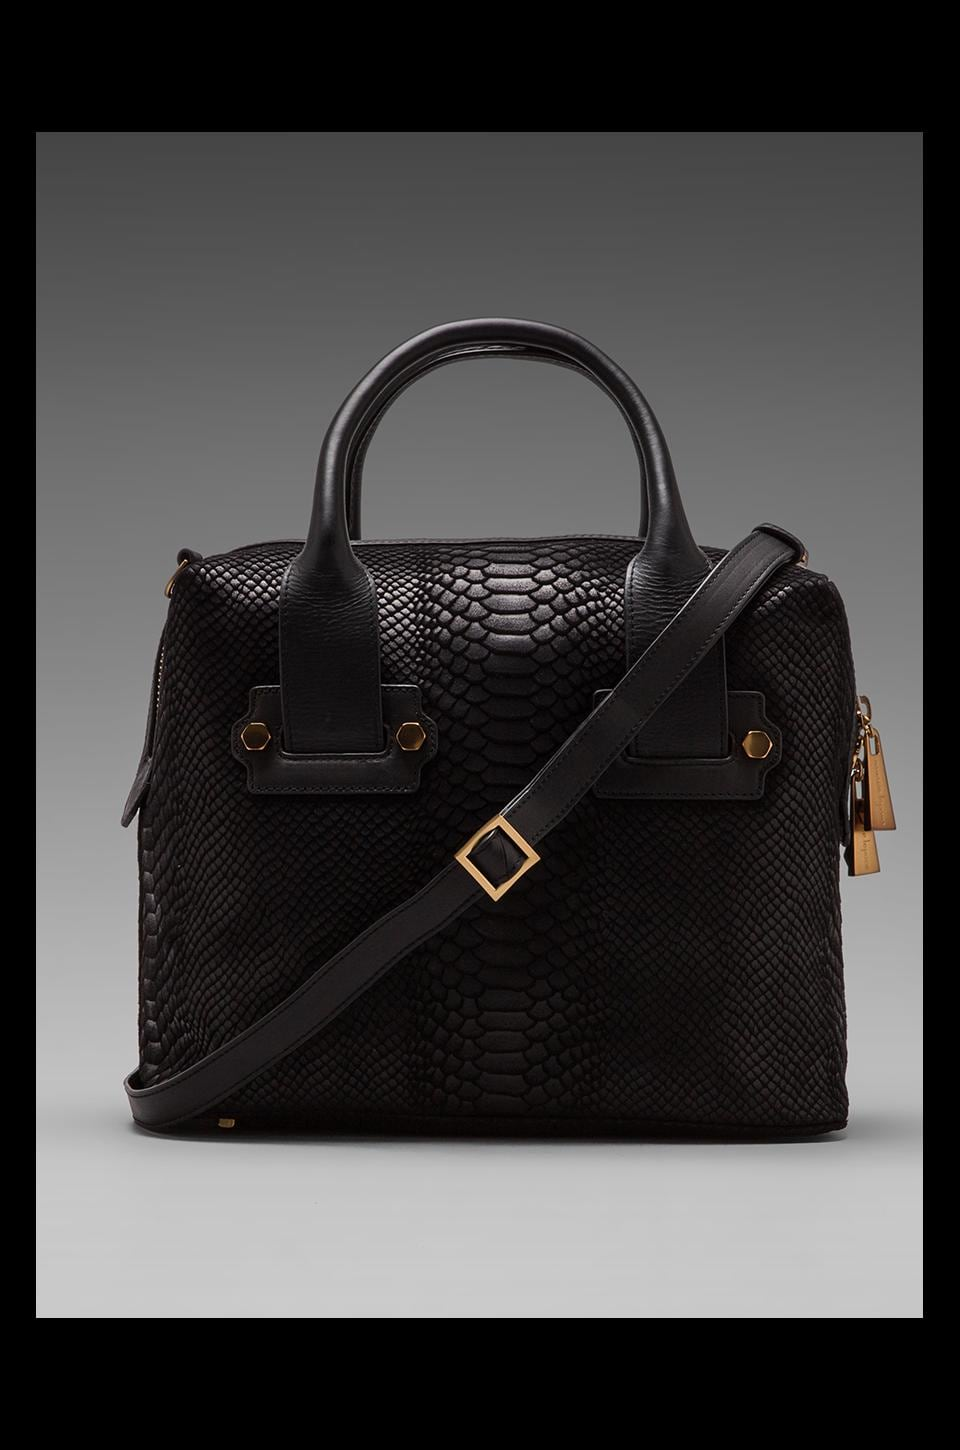 Nanette Lepore Seduction Satchel in Black/Gold